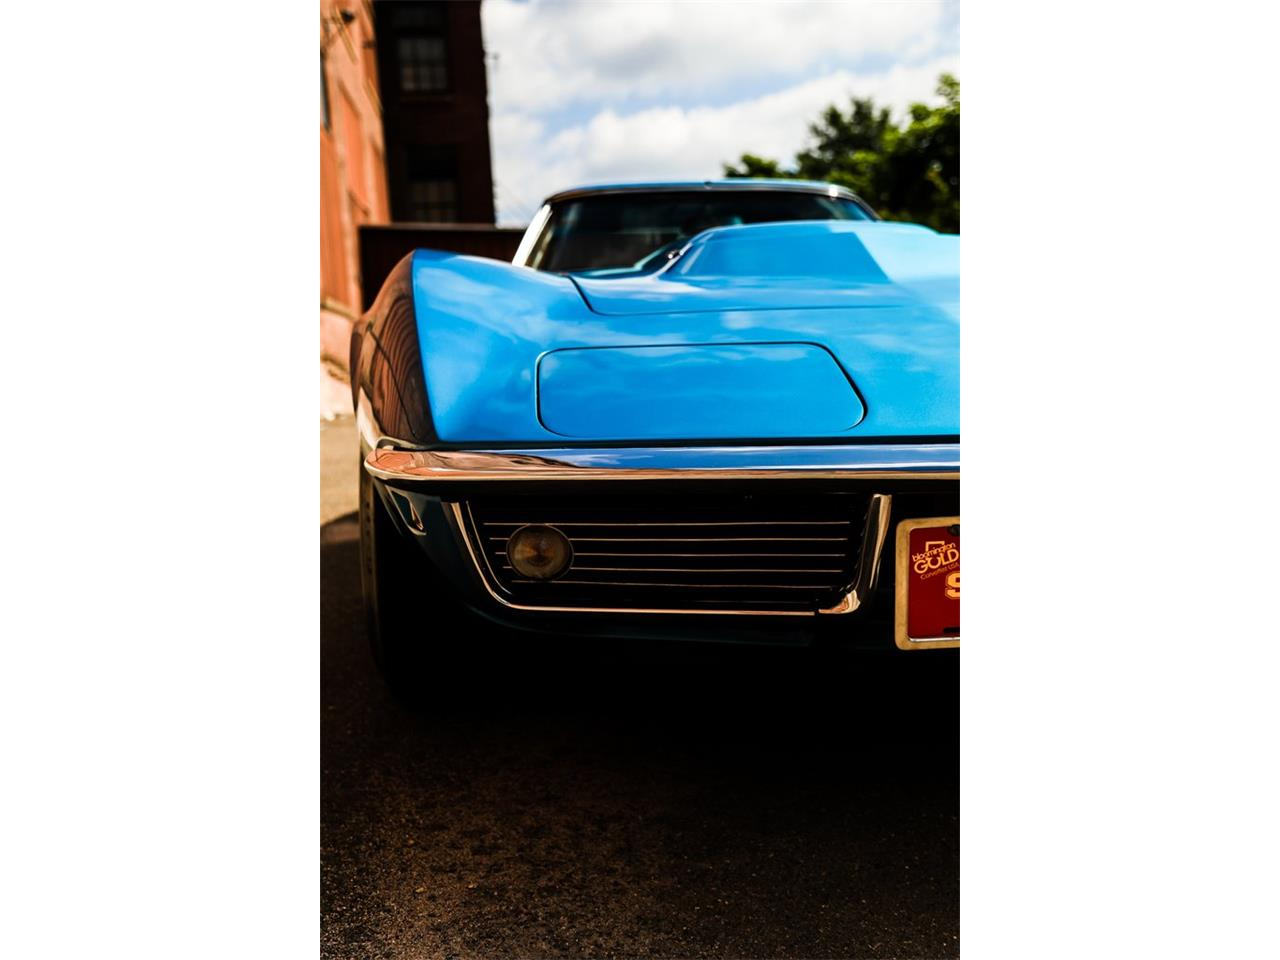 1969 Chevrolet Corvette for sale in Wallingford, CT – photo 88